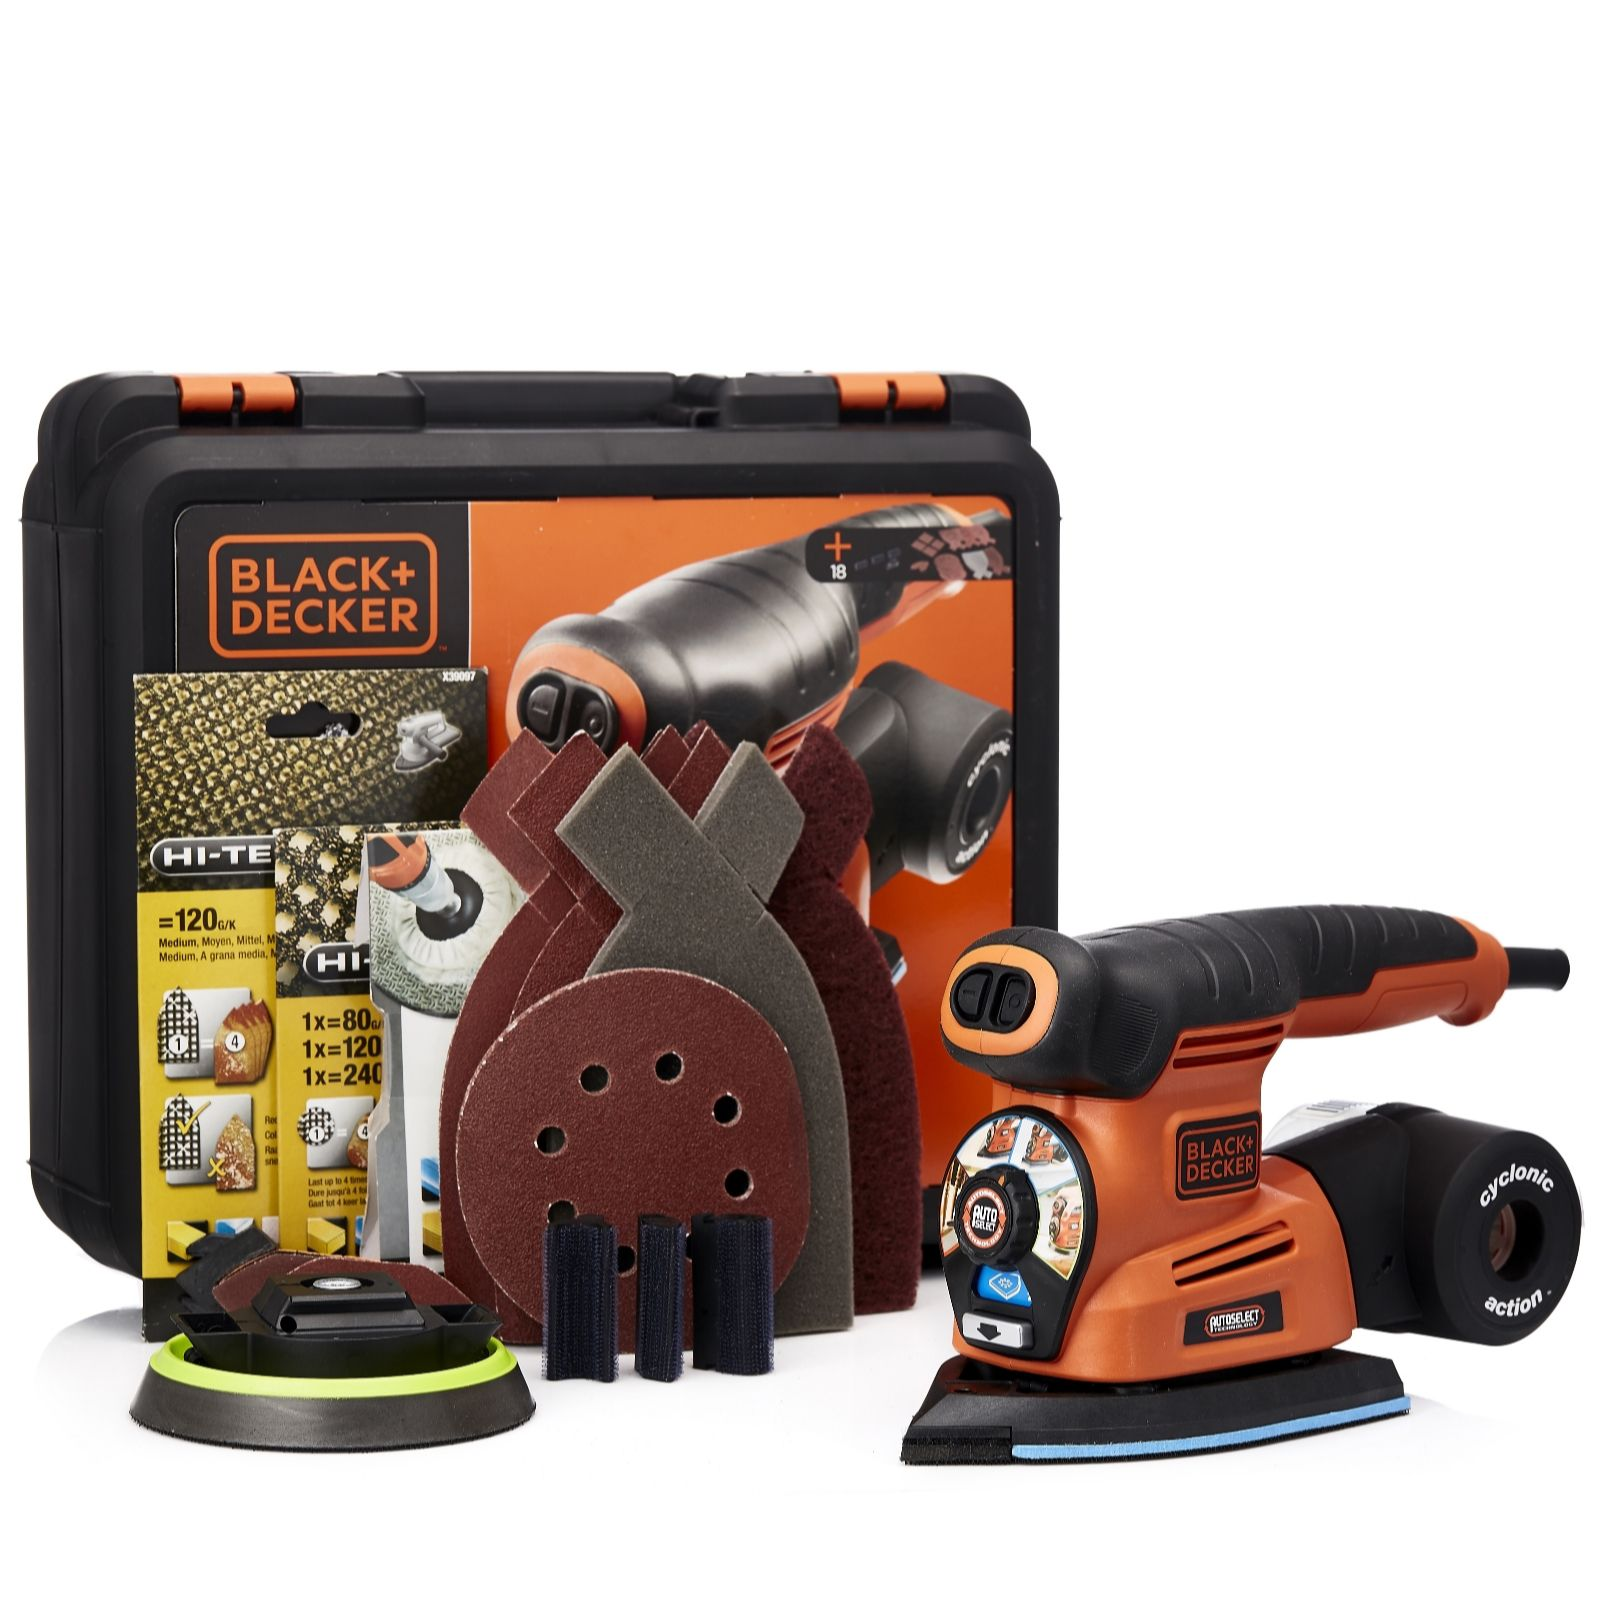 Black & Decker Autoselect 4-in-1 Multi Sander with 26 Accessories - 507560